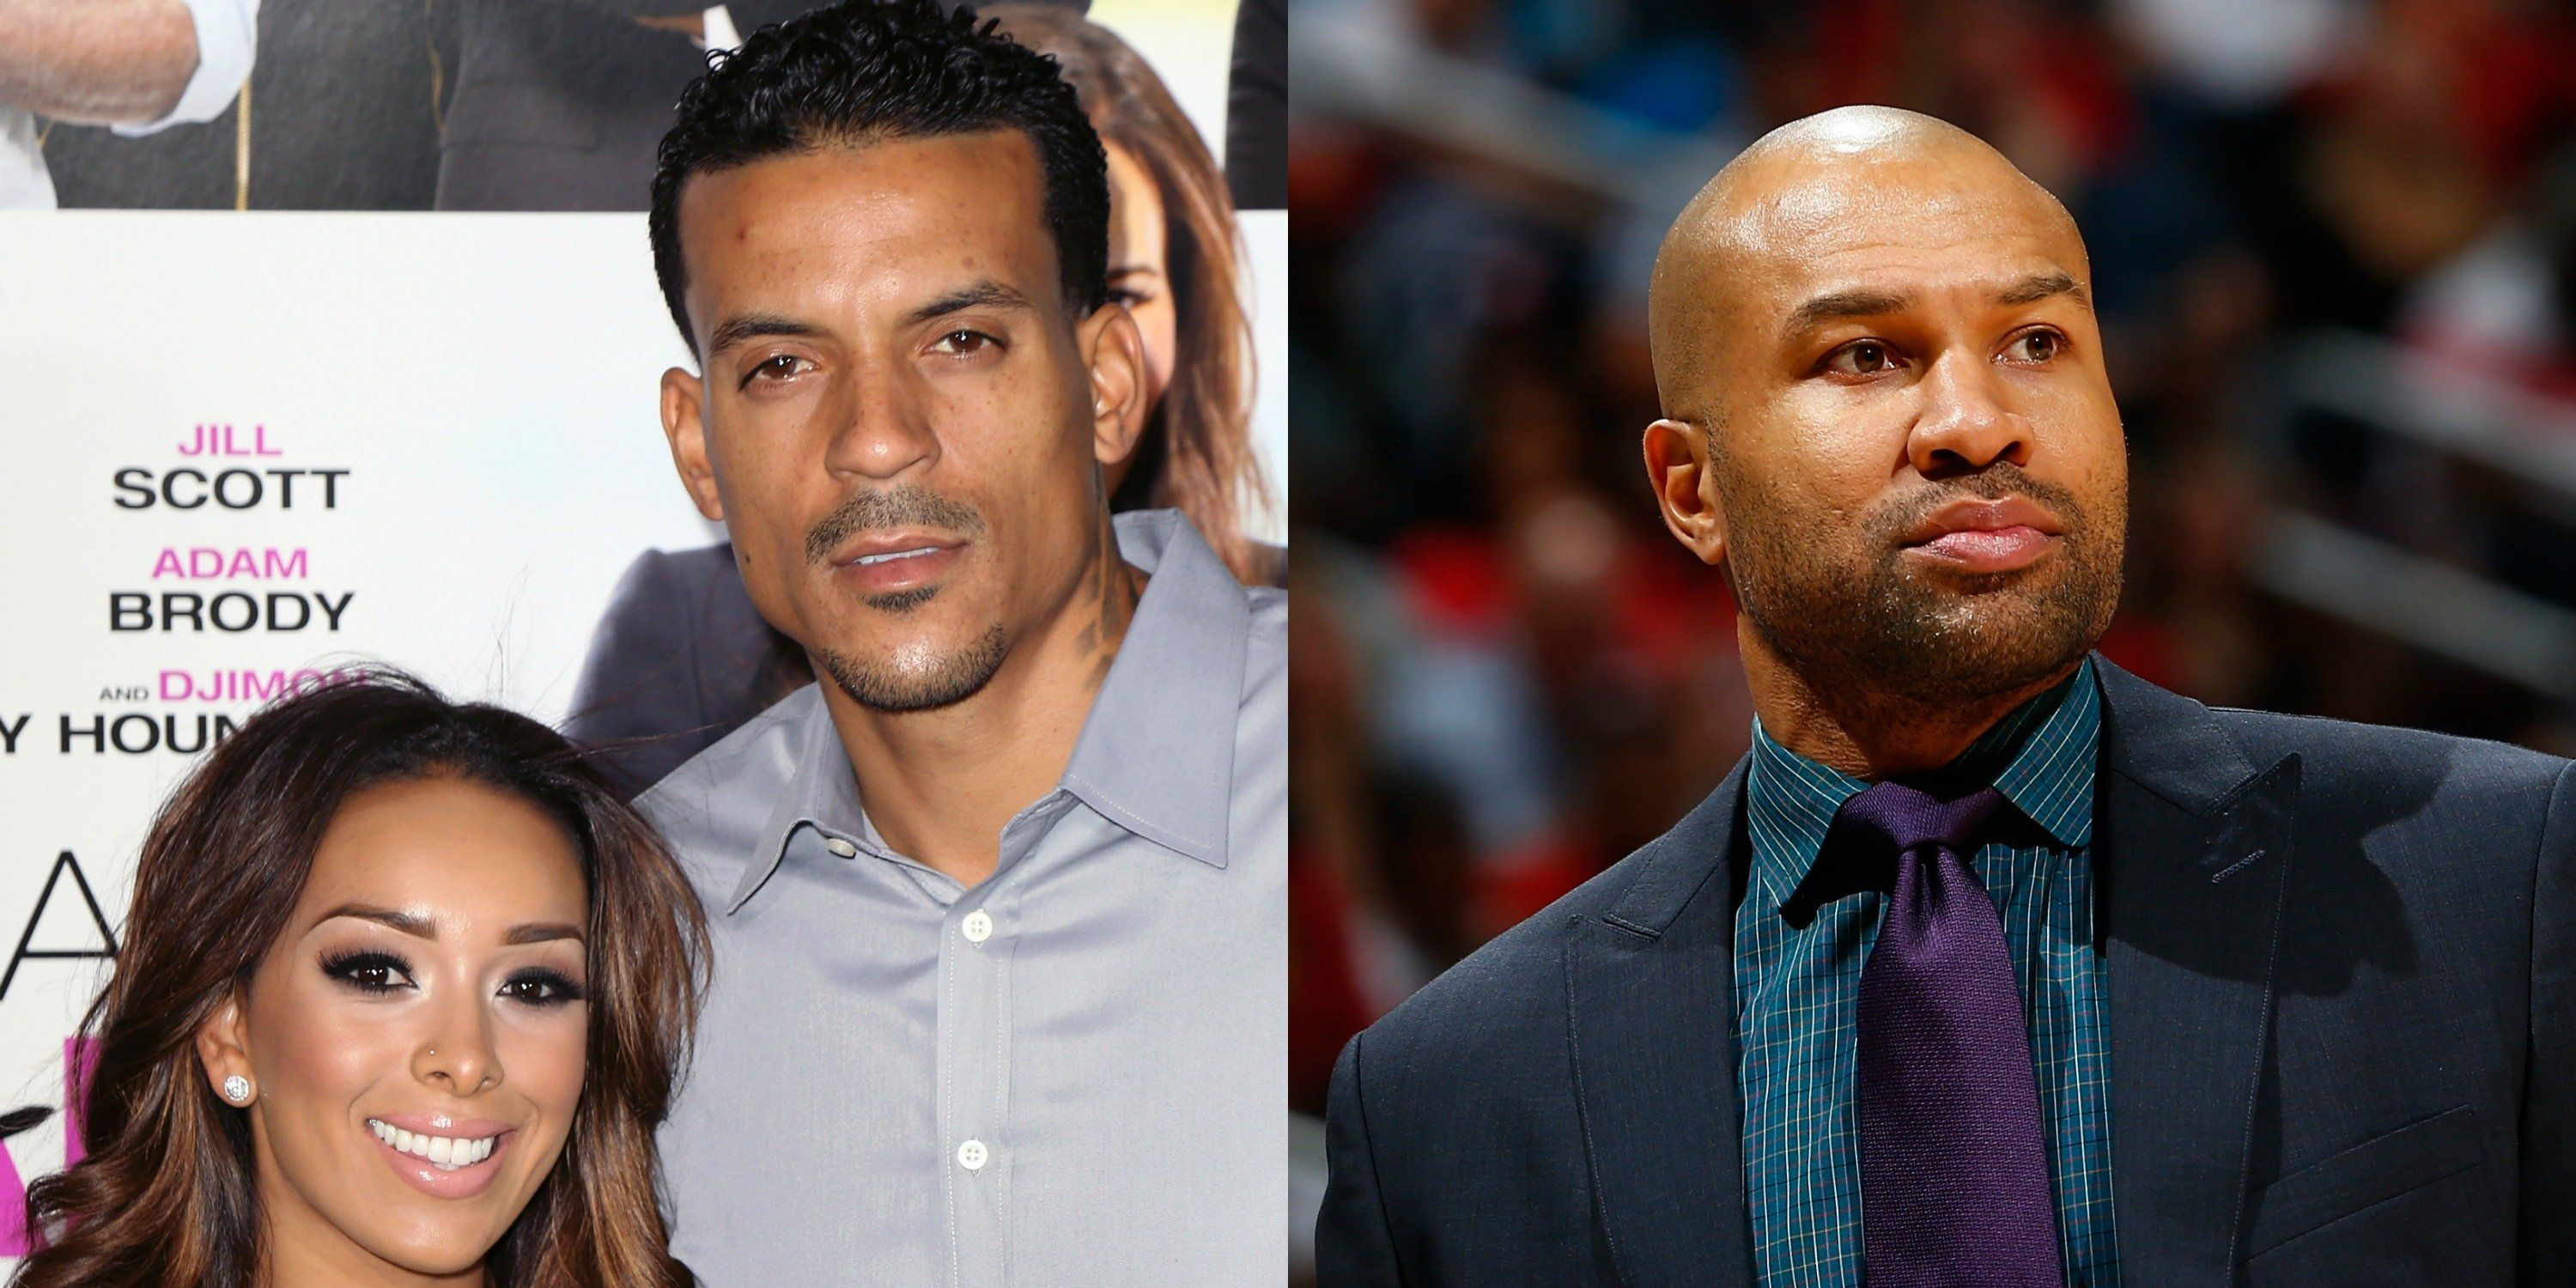 Matt Barnes reportedly attacked former teammate Derek Fisher in Los Angeles because Fisher's dating his ex-wife, Gloria Govan.